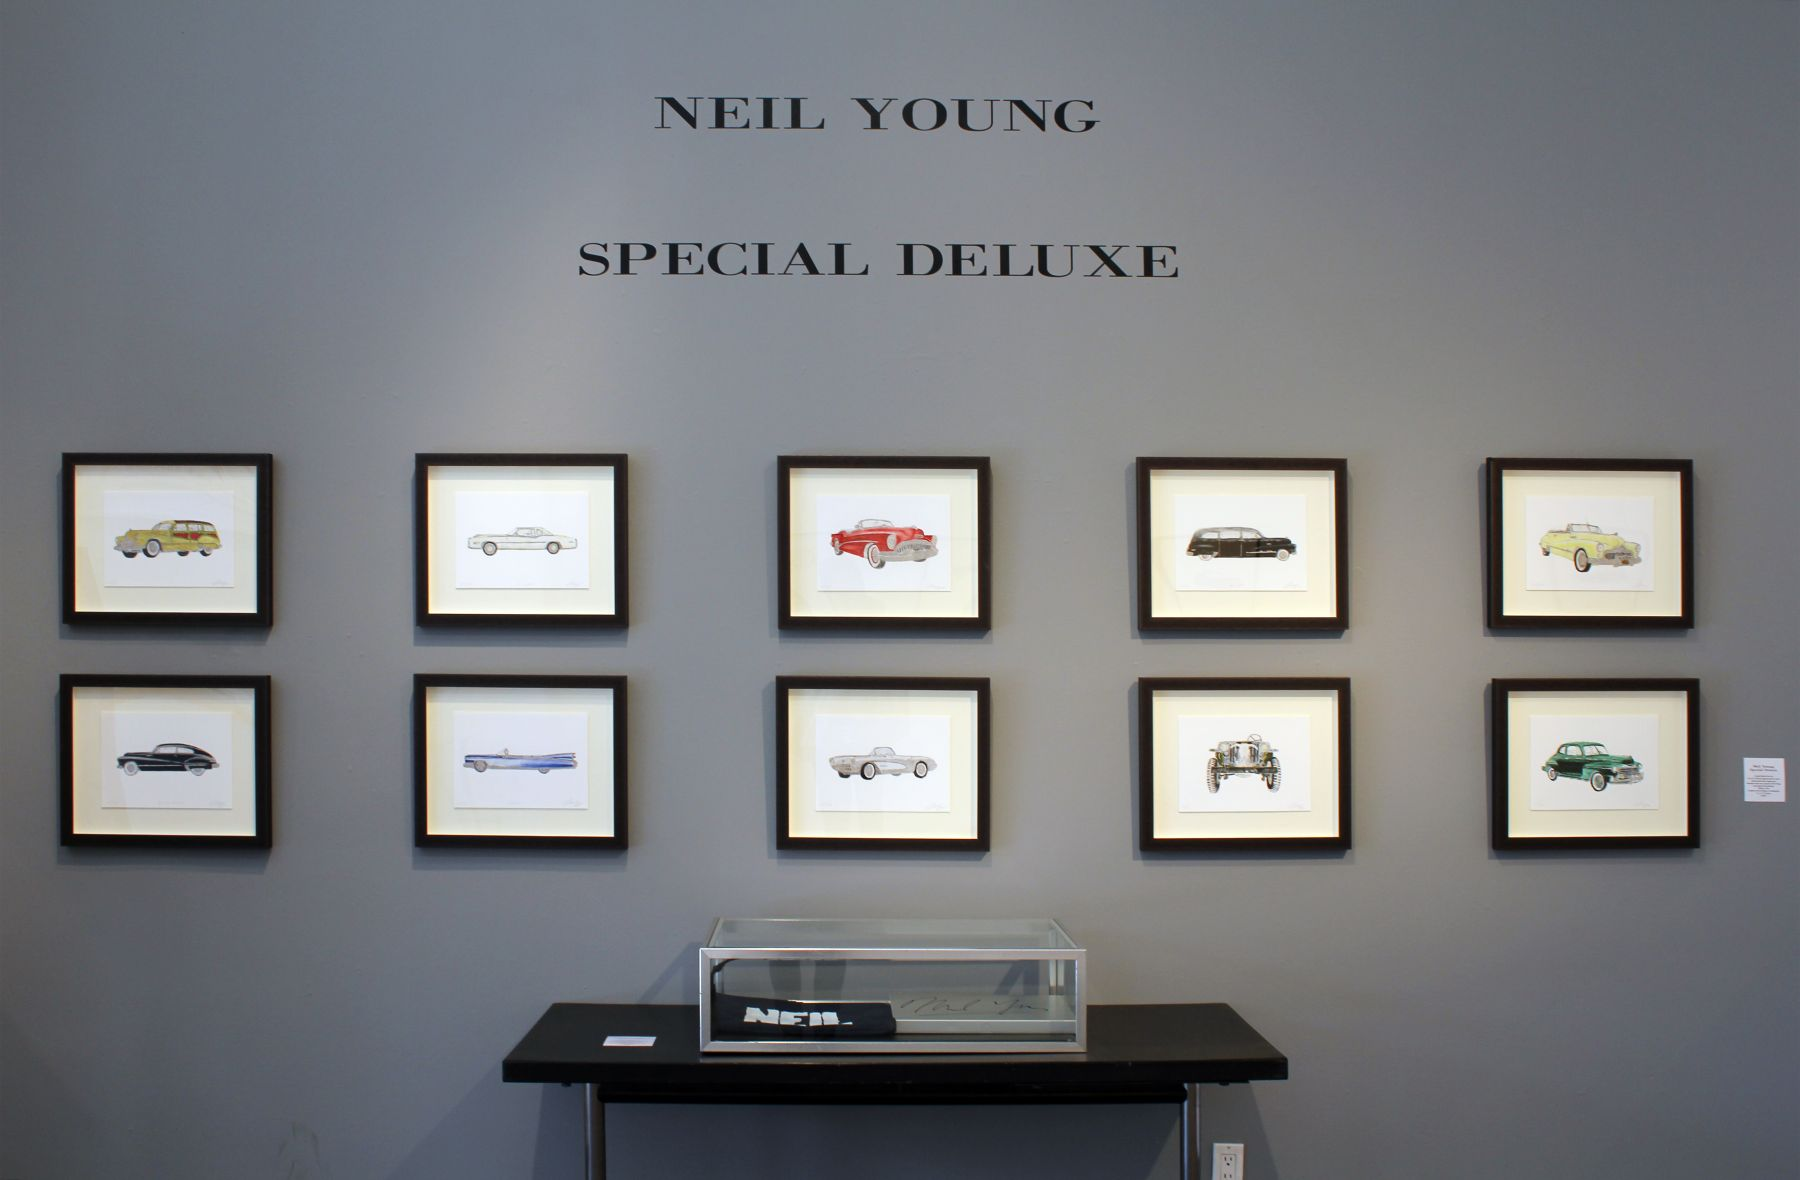 Neil Young Limited Edition Box Set